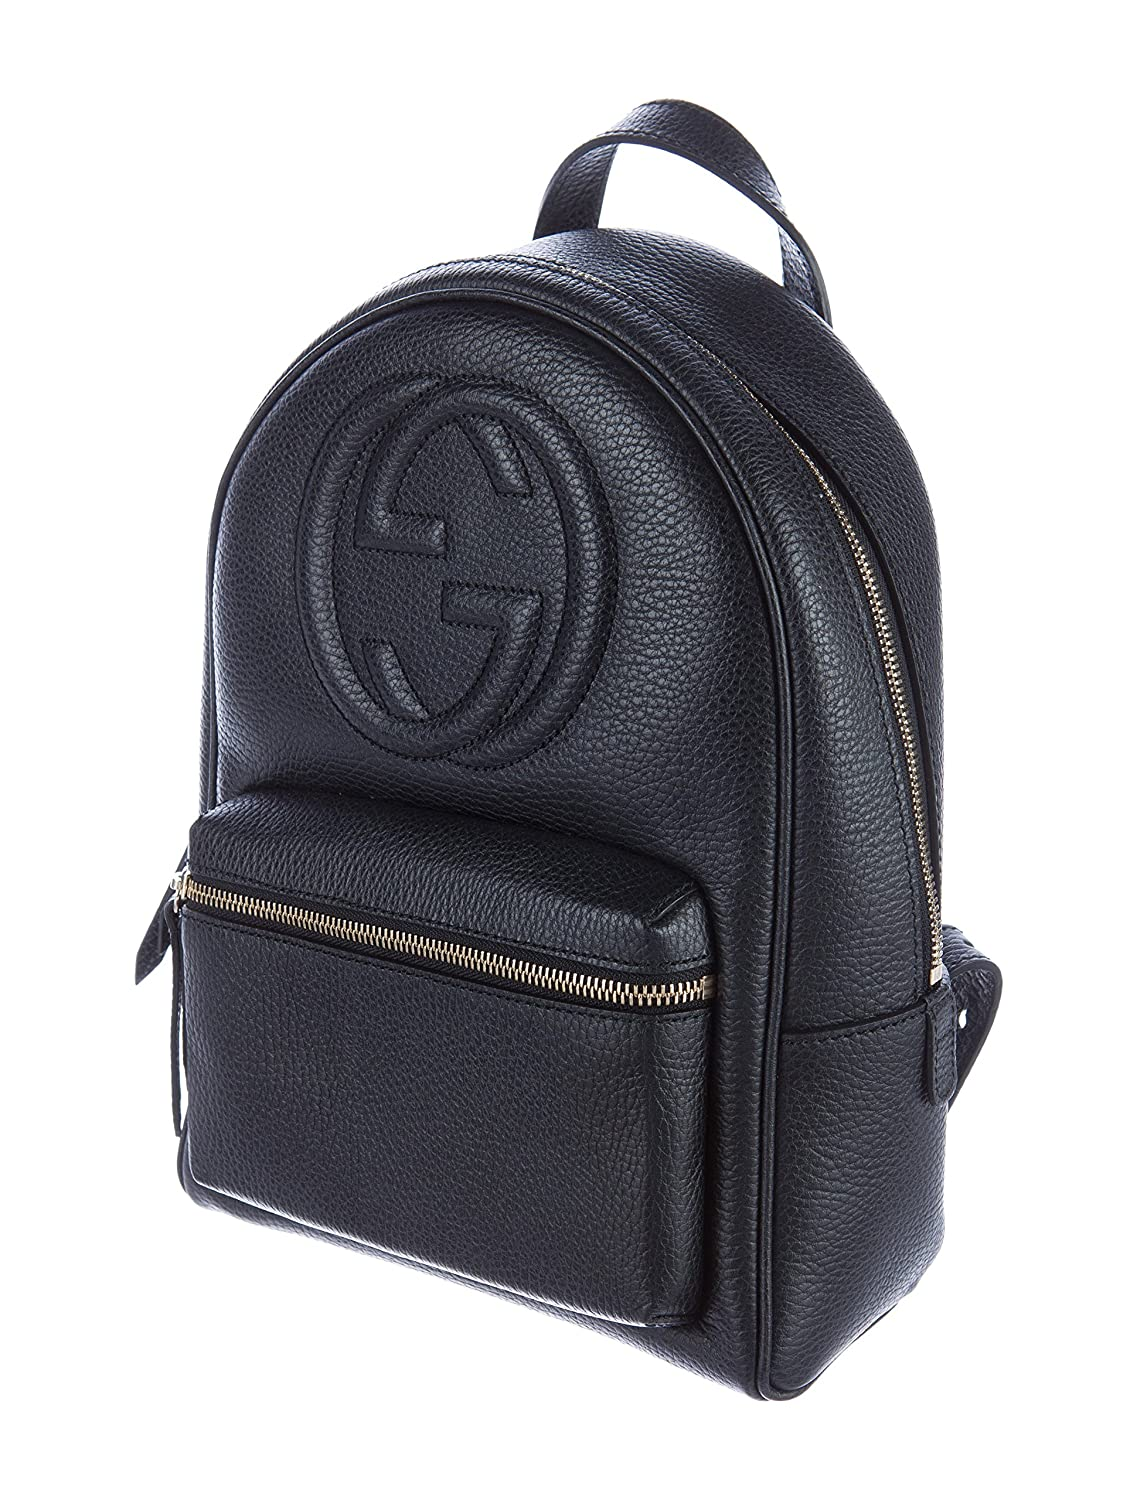 6e7b12f7ce41 Amazon.com  Gucci Soho Black Backpack Calf Leather Backpack Ladies Bag  Italy New   Shoes